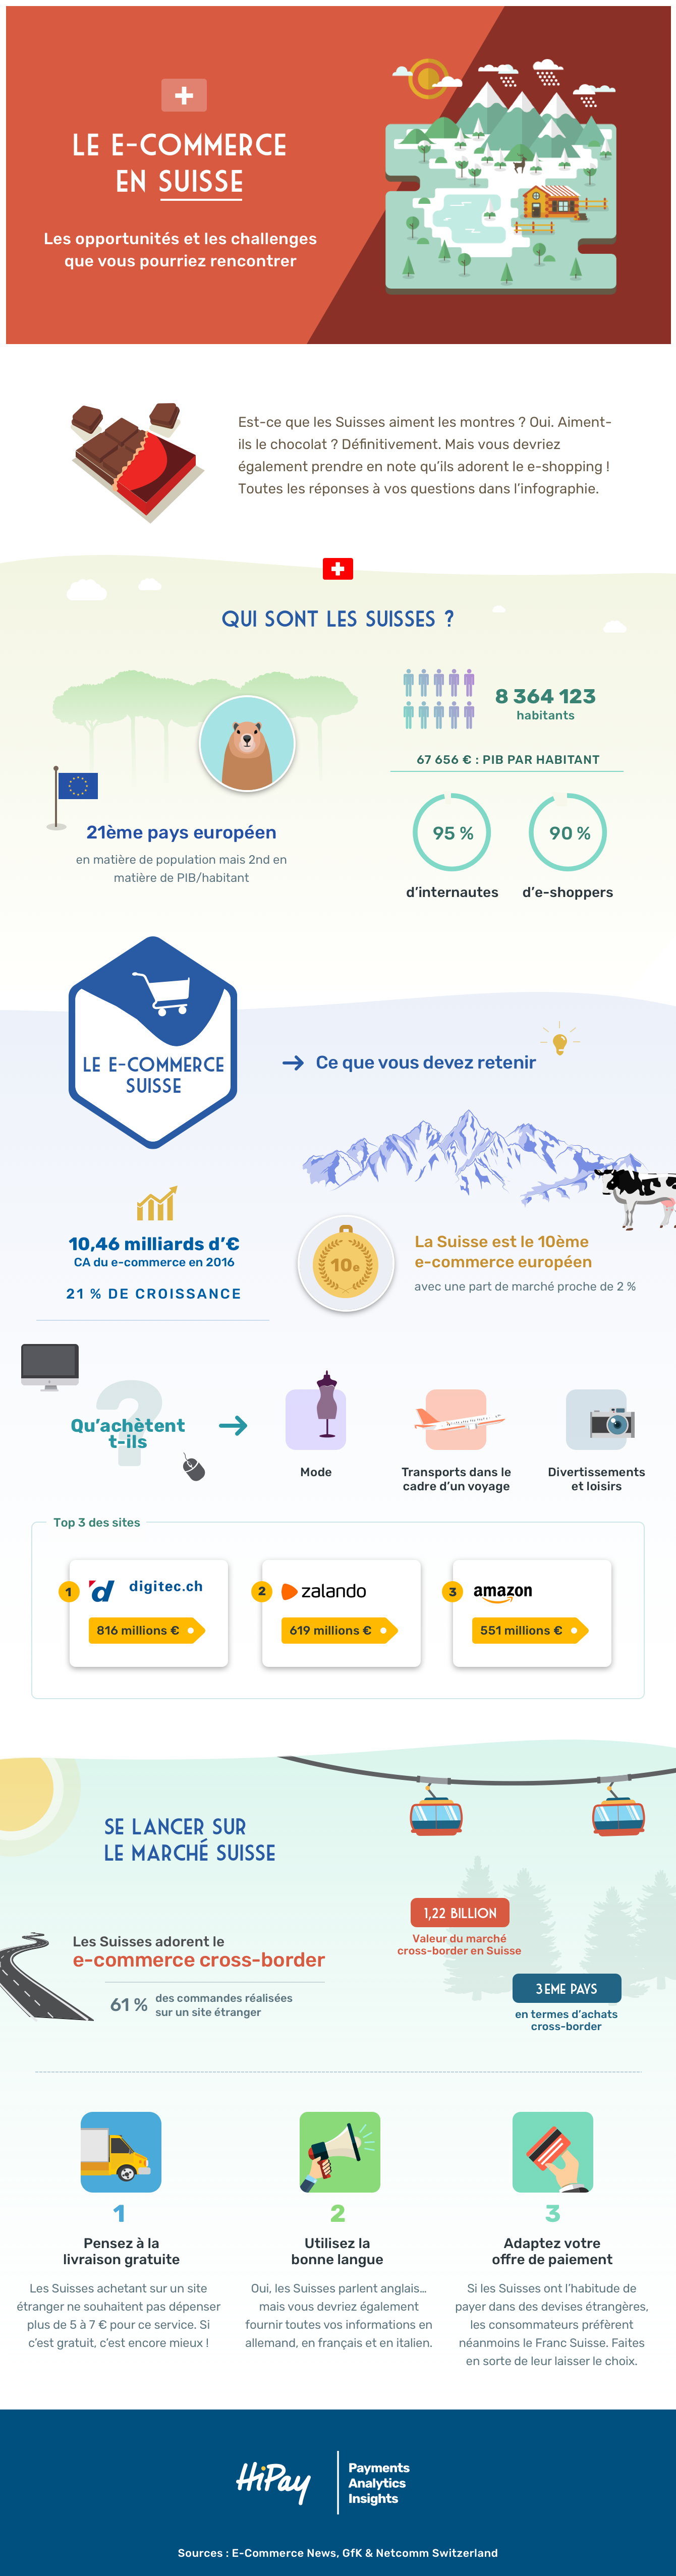 infographie_ecommerce_suisse_fr.png